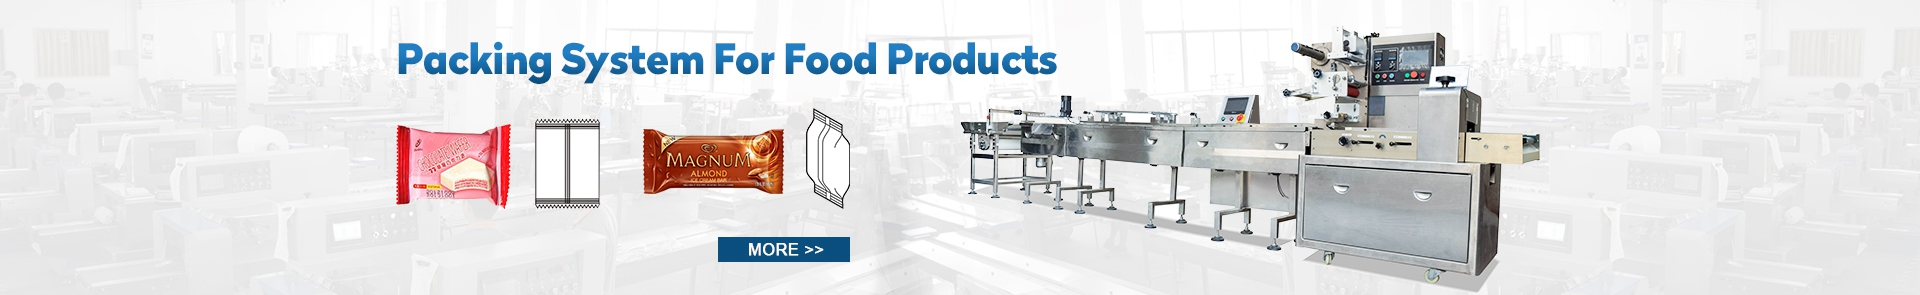 Packing system for food products